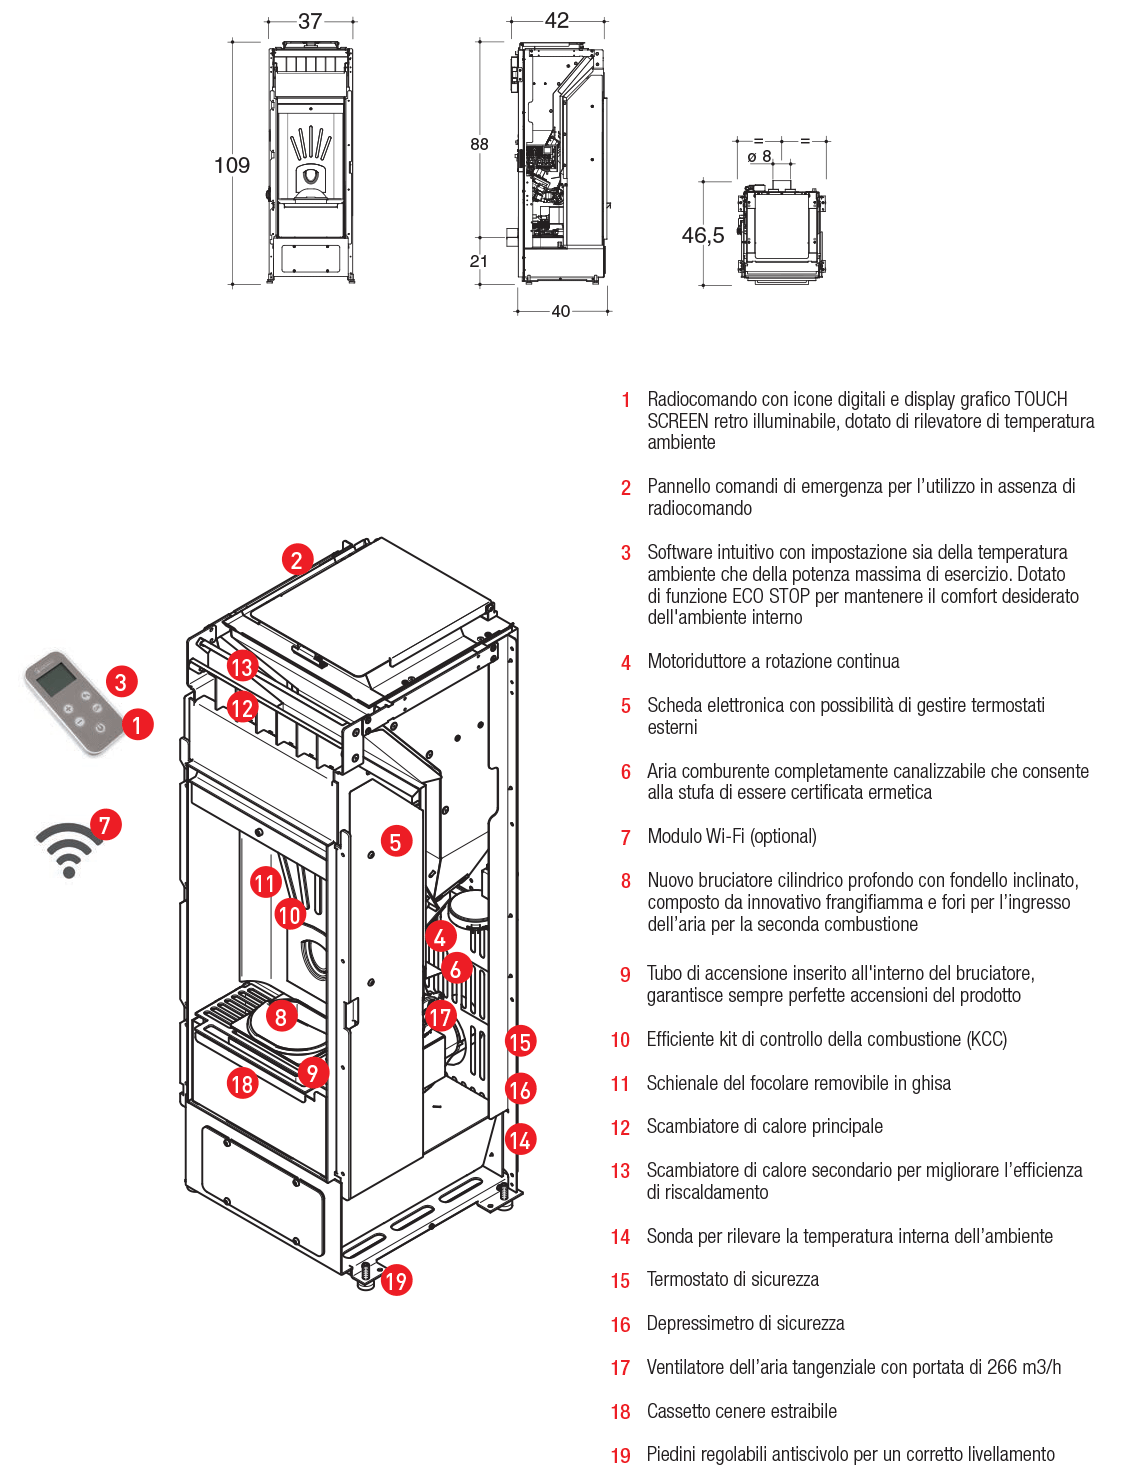 pellet stove airtight with a system of forced convection